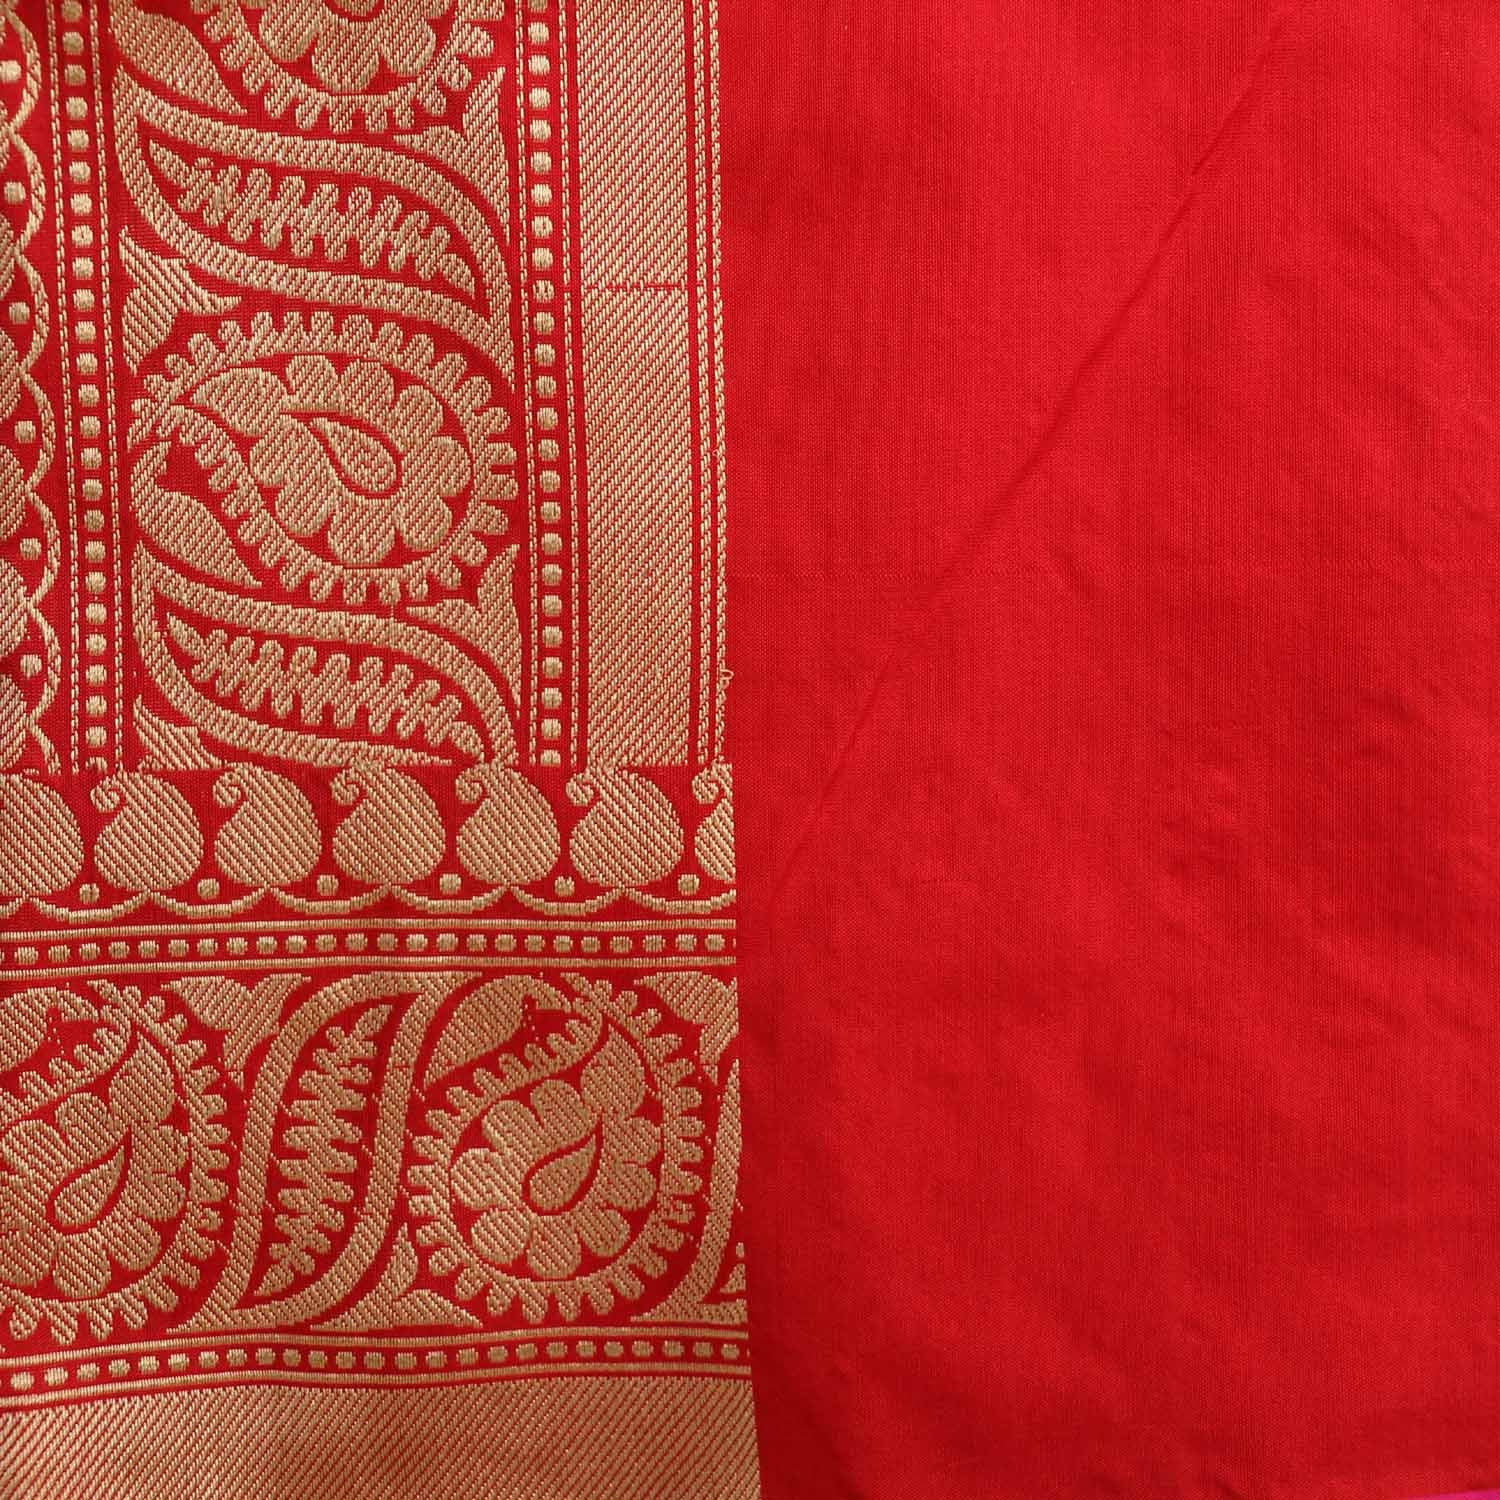 Red Pure Katan Silk Banarasi Handloom Saree - Tilfi - 5